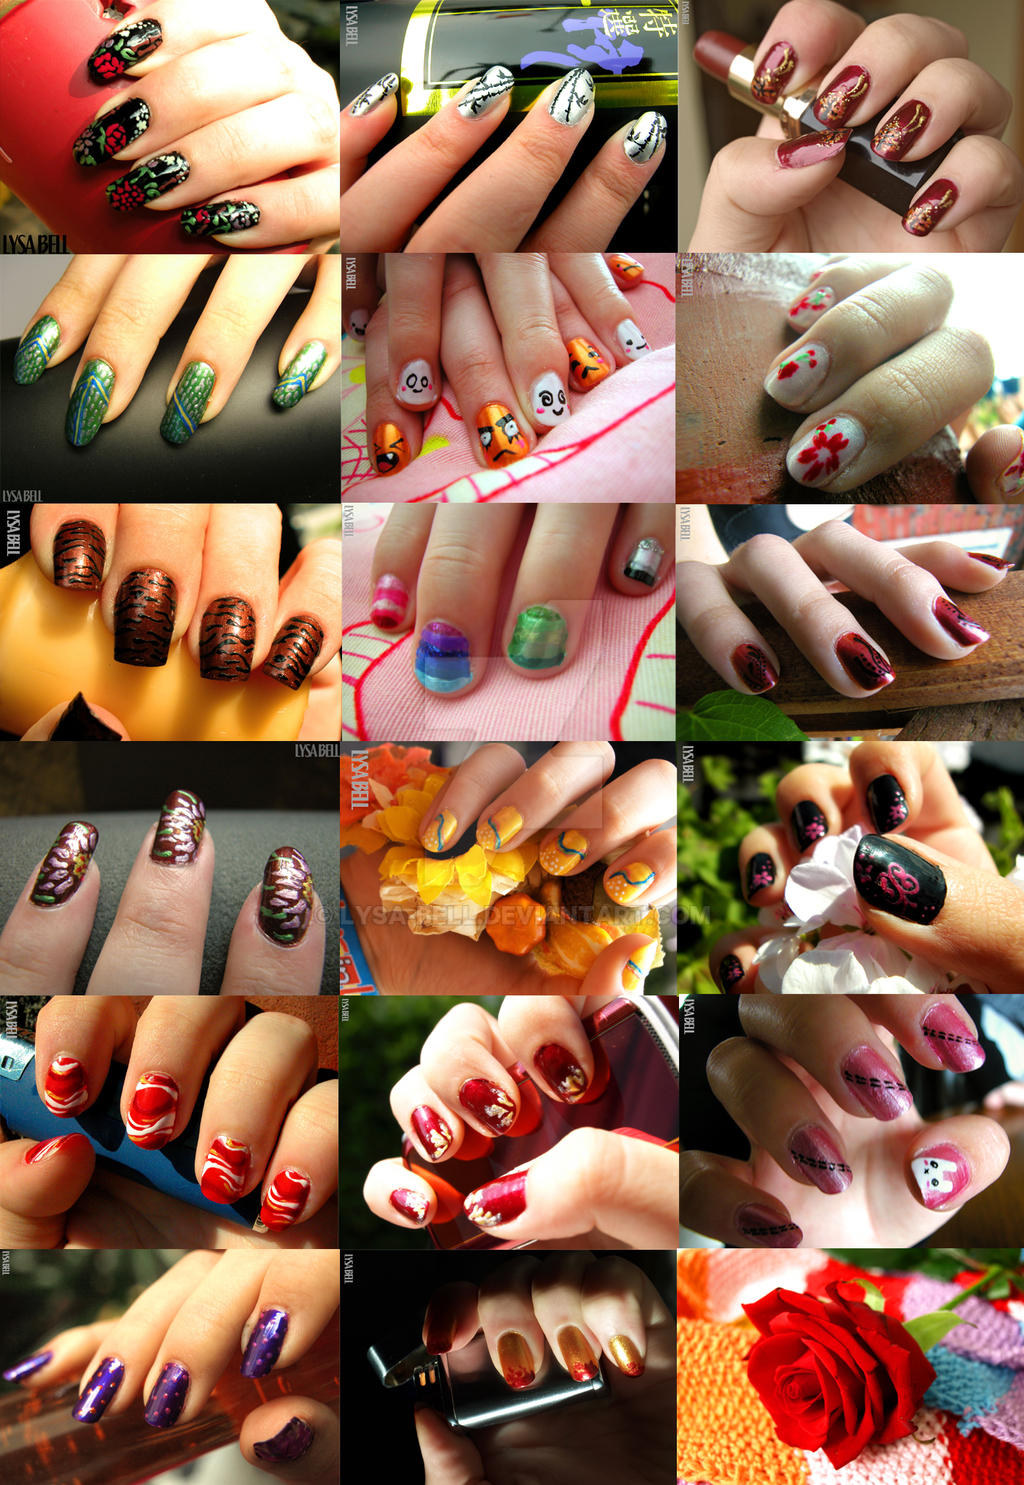 Nail art by Lysa-Bell